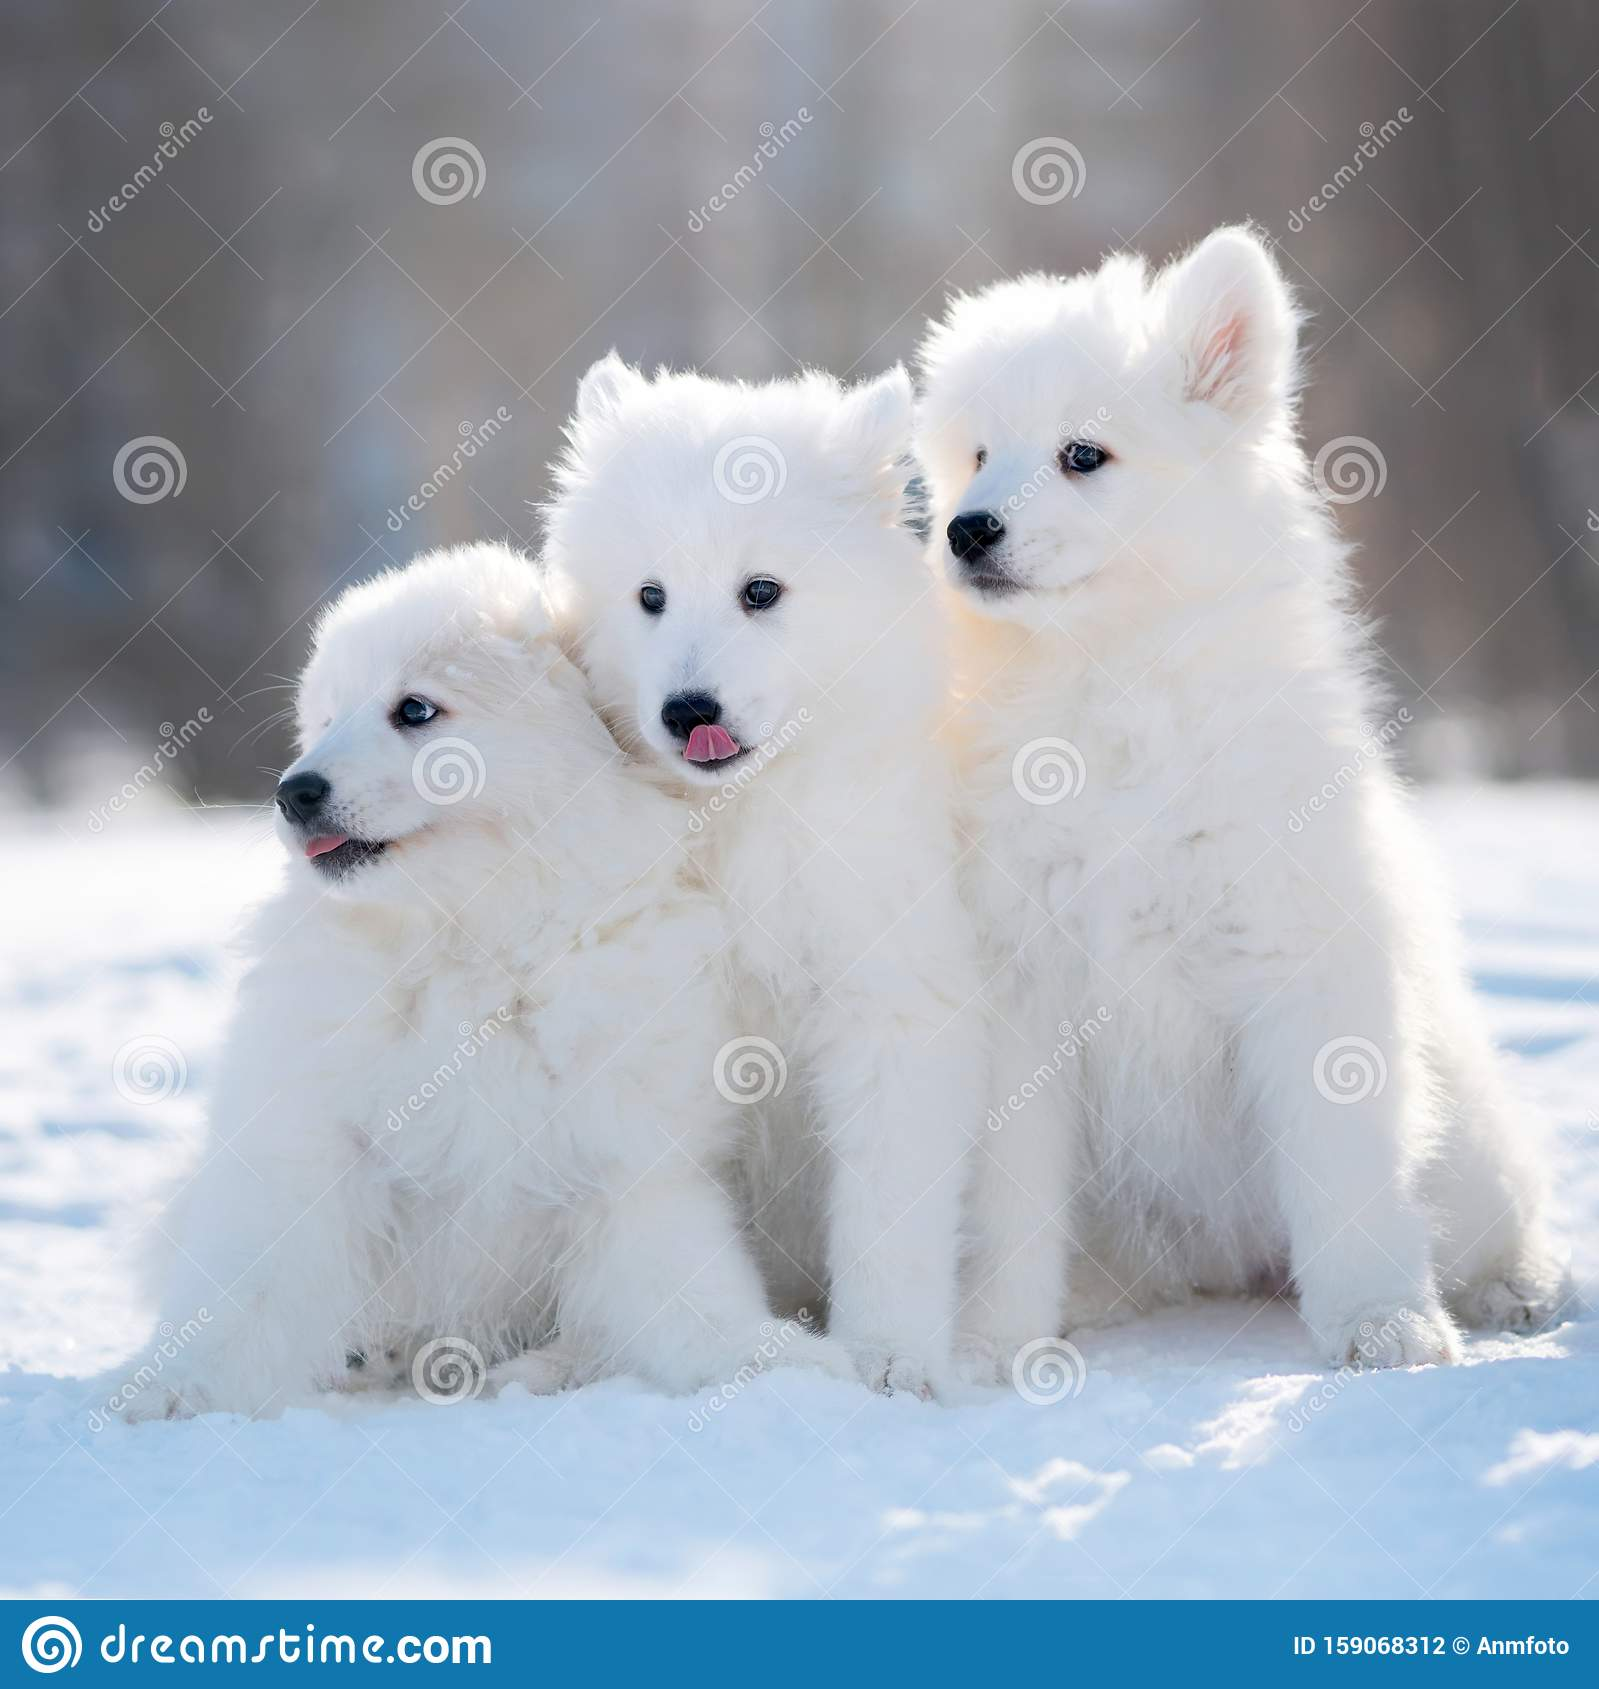 Samoyed Dog Puppies In Winter Stock Photo Image Of Funny Baby 159068312